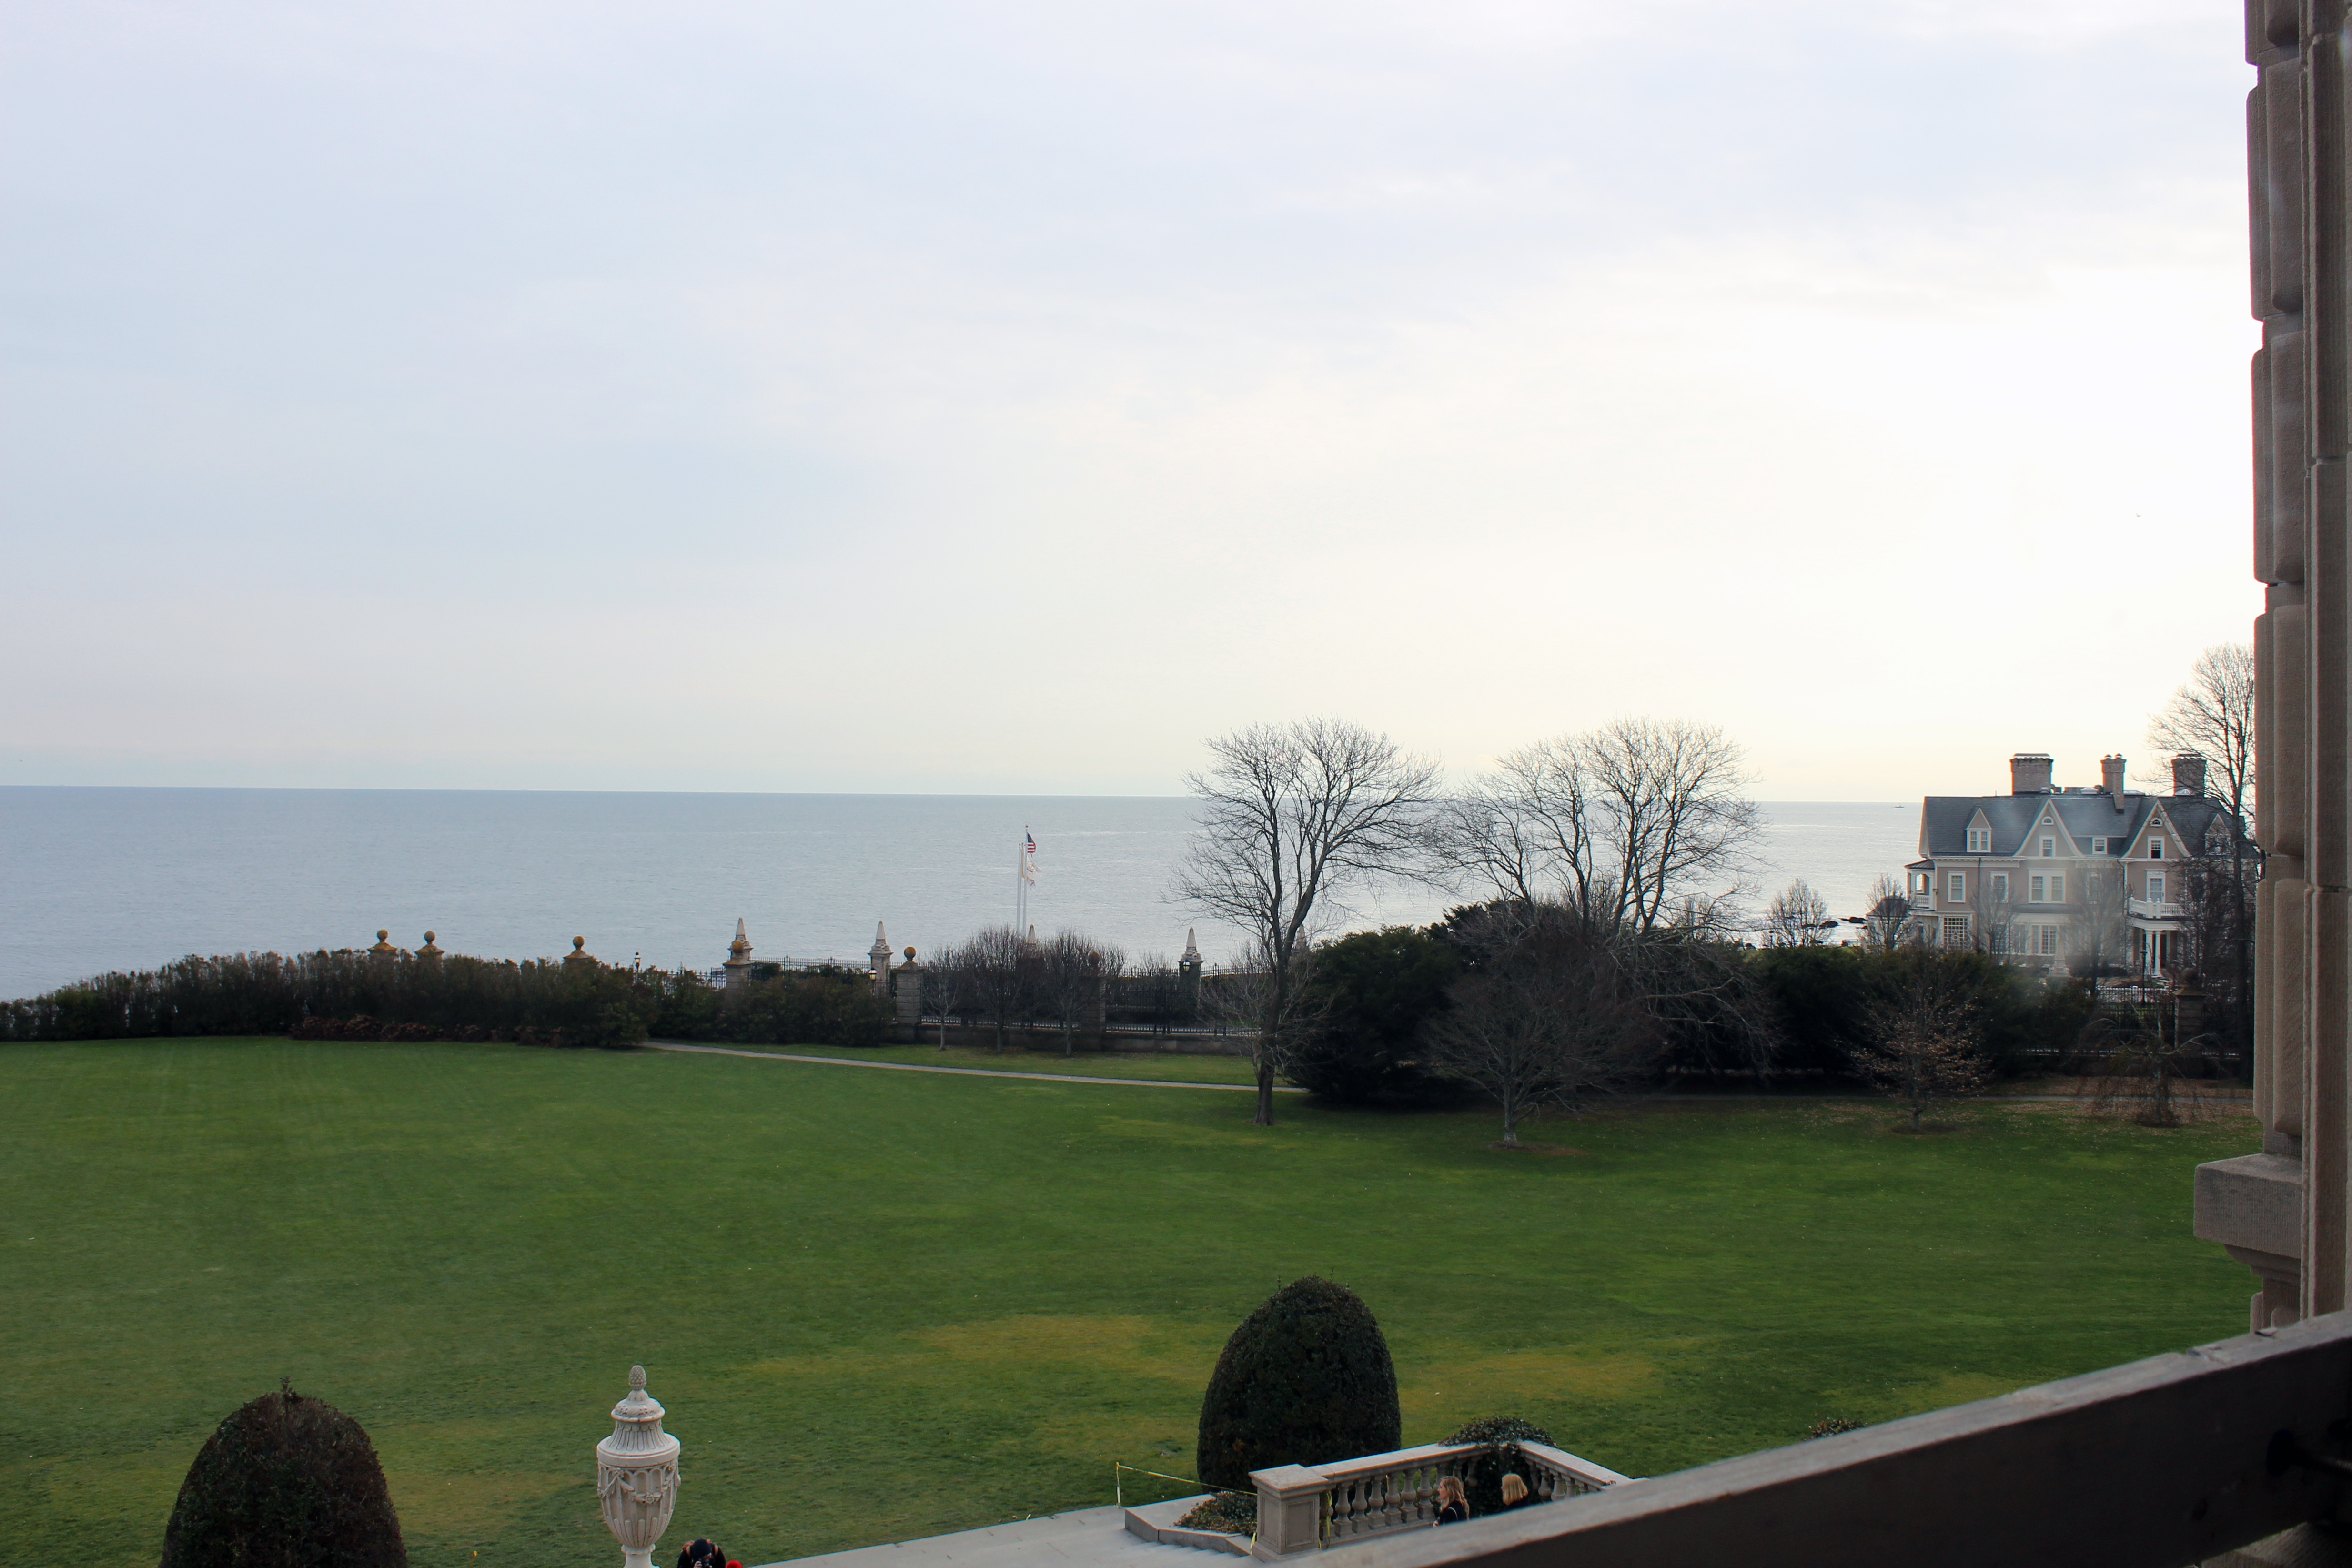 The Breakers - Newport RI | The rear facing rooms of The Breakers Newport mansion offers views of the manicured property leading up to the Atlantic Ocean. The Cliff Walk follows the perimeter, dividing the two.